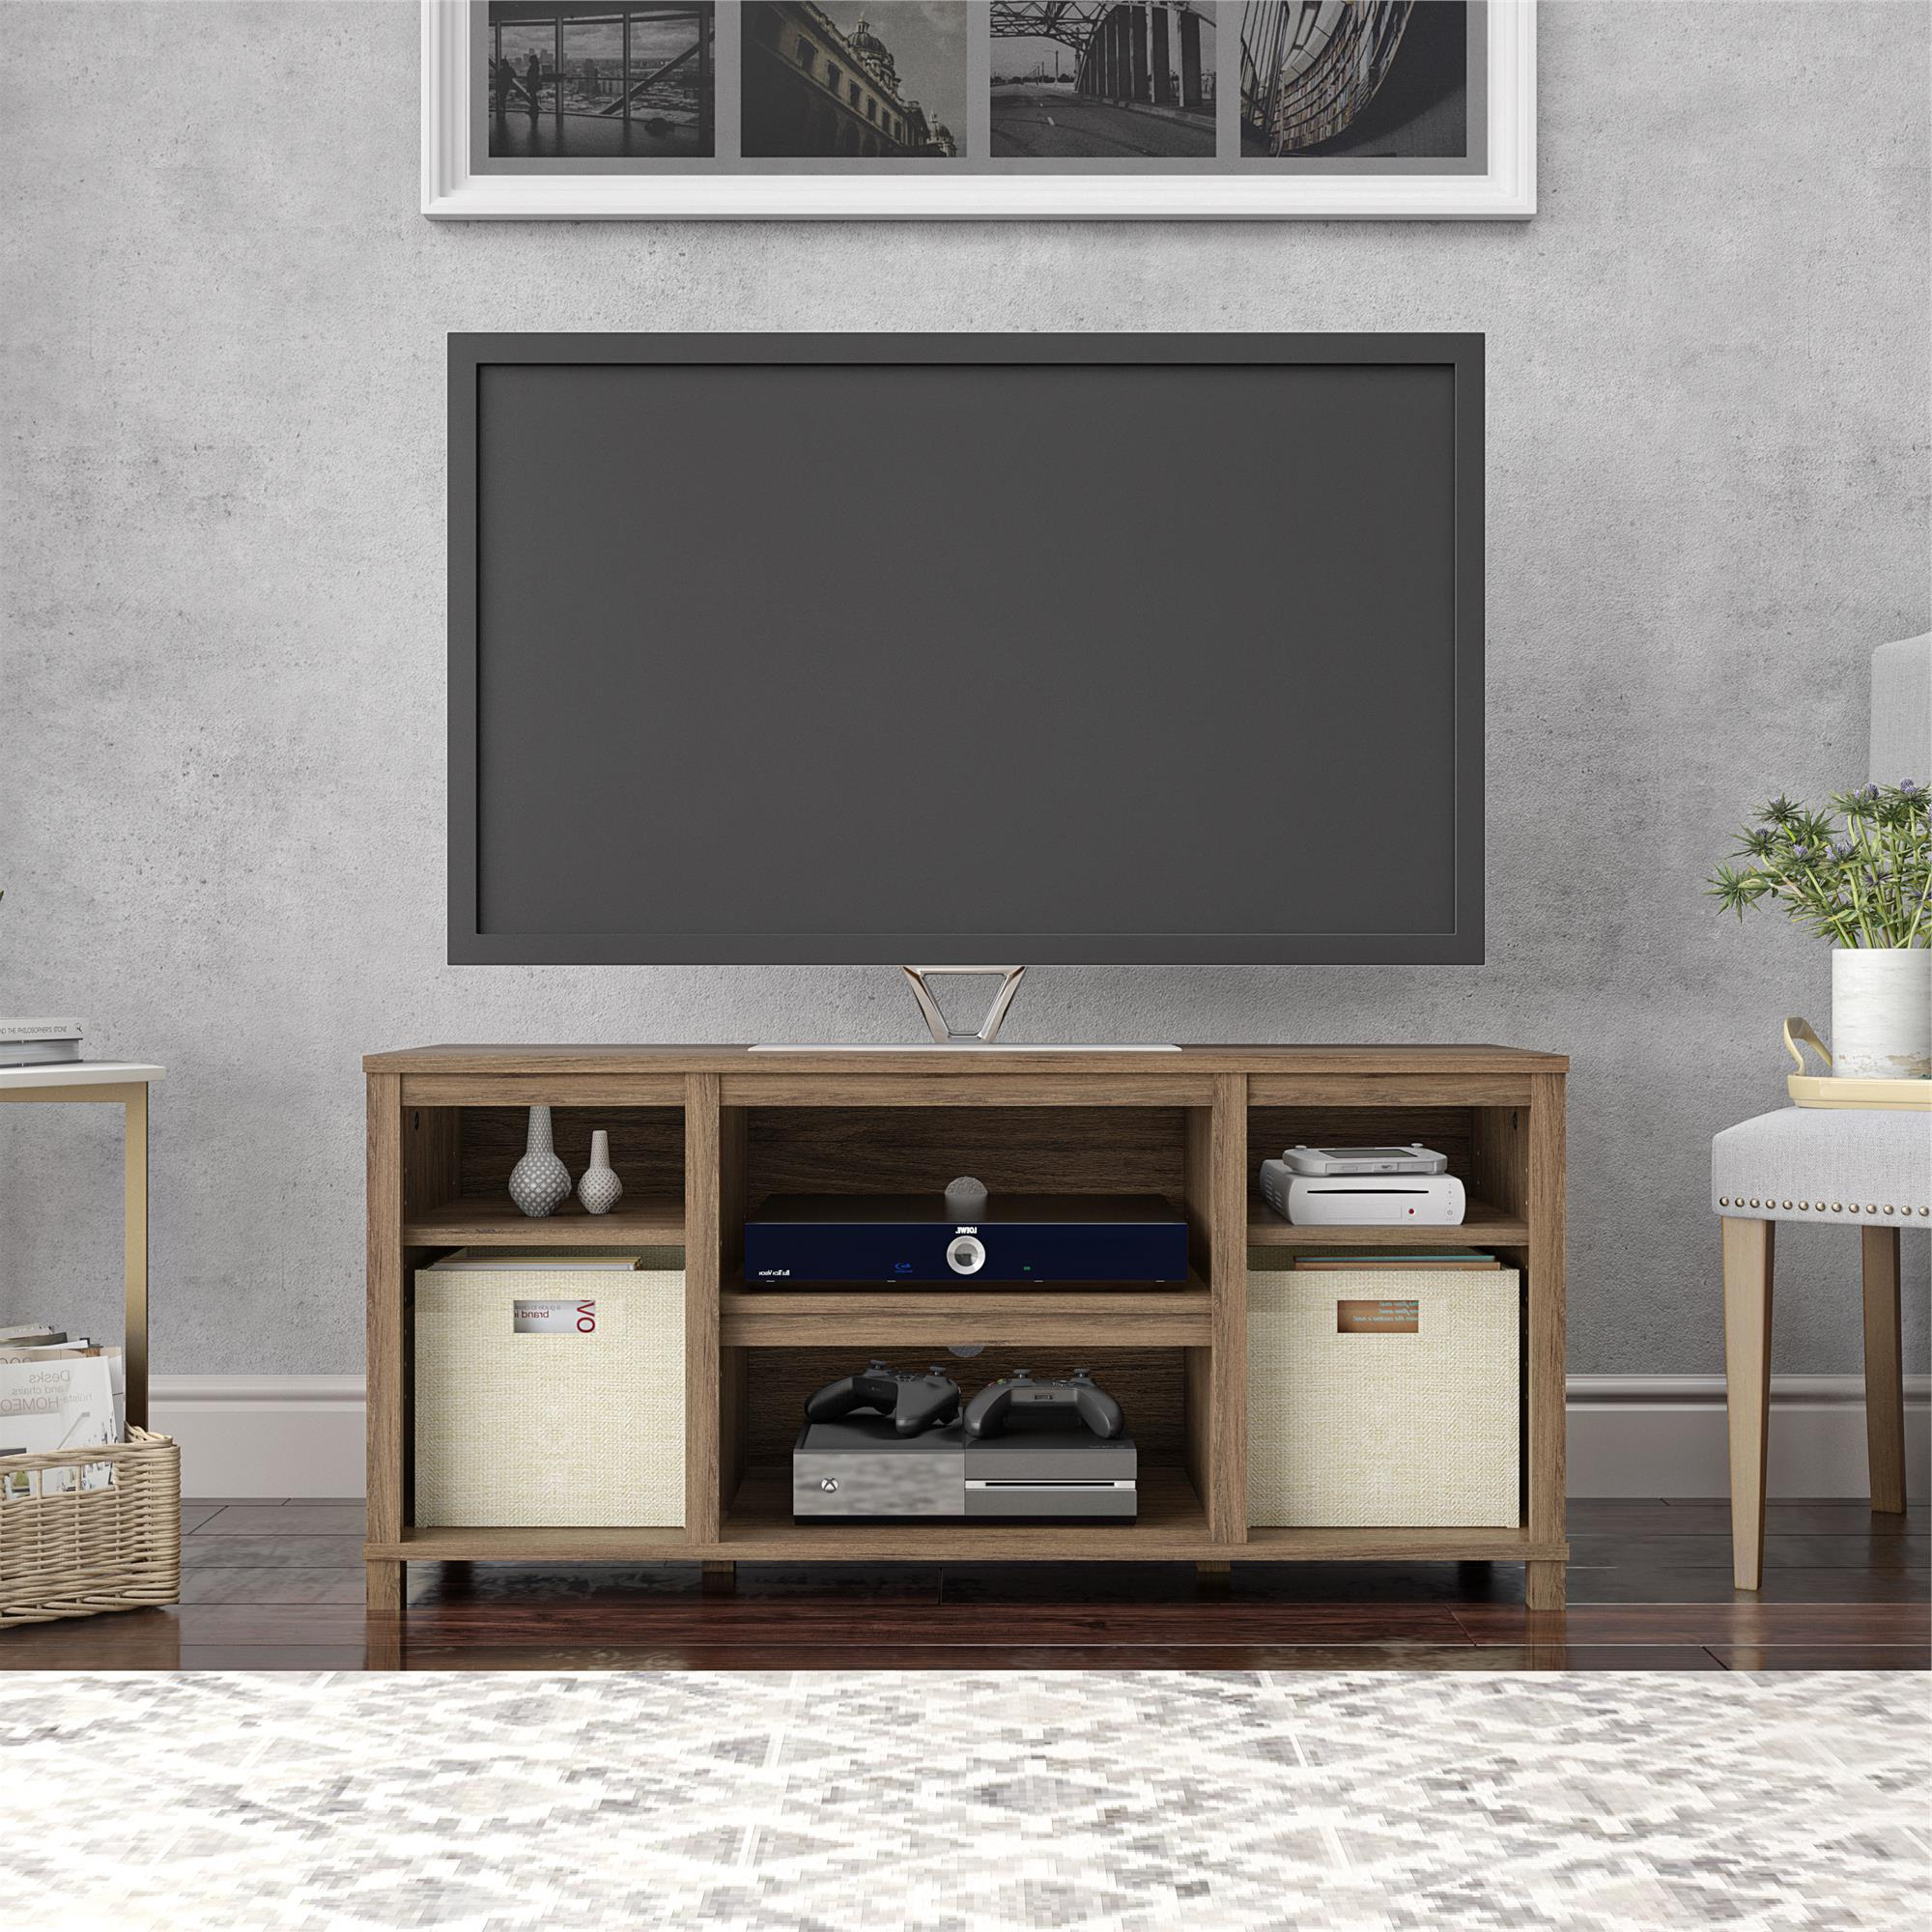 """Mainstays Parsons Cubby Tv Stand For Tvs Up To 50"""", Rustic Pertaining To Lansing Tv Stands For Tvs Up To 50"""" (View 3 of 20)"""